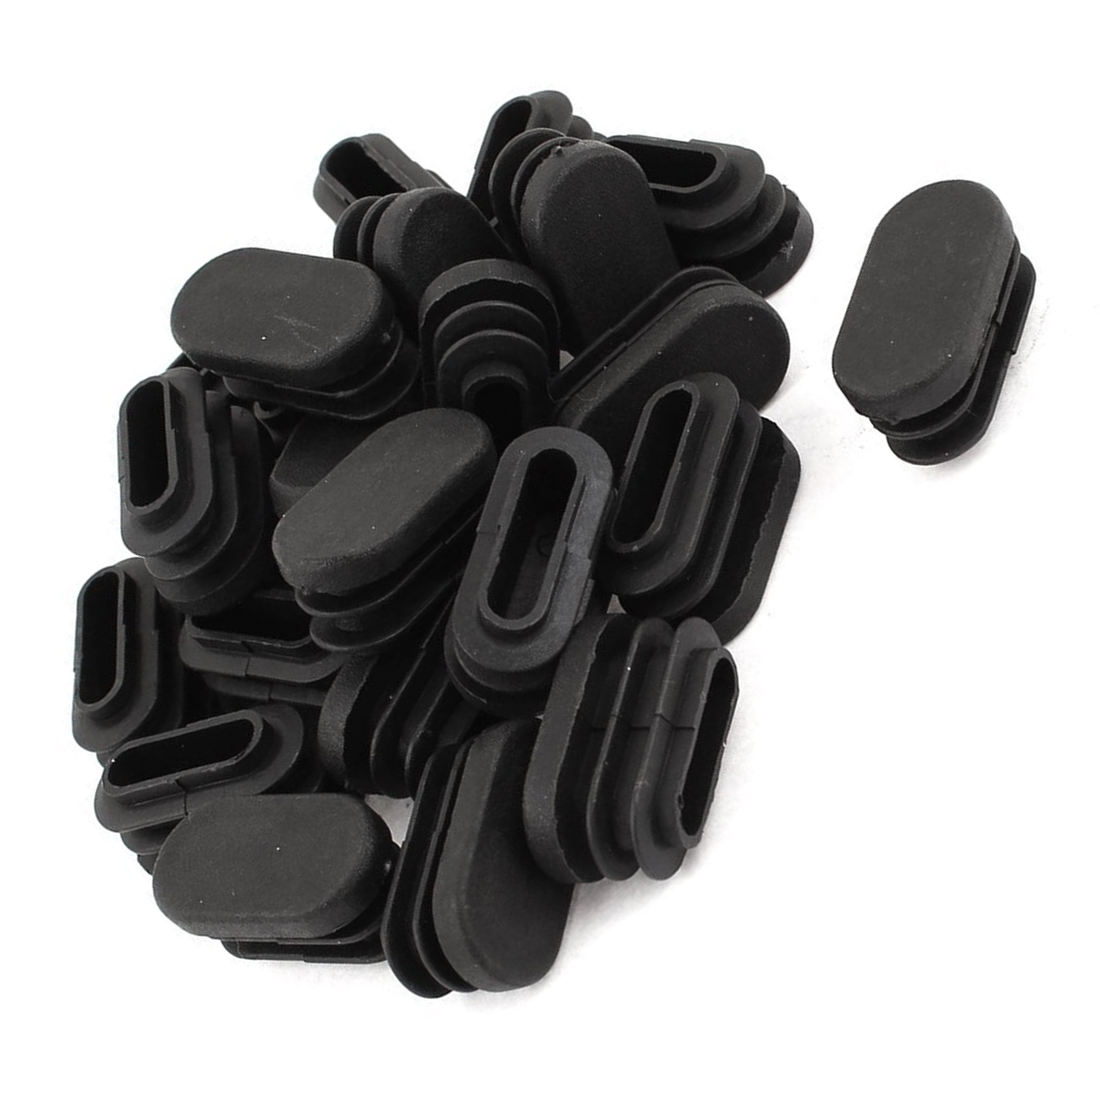 15mm X 30mm Plastic Oval Shaped End Cap Tube Insert Black